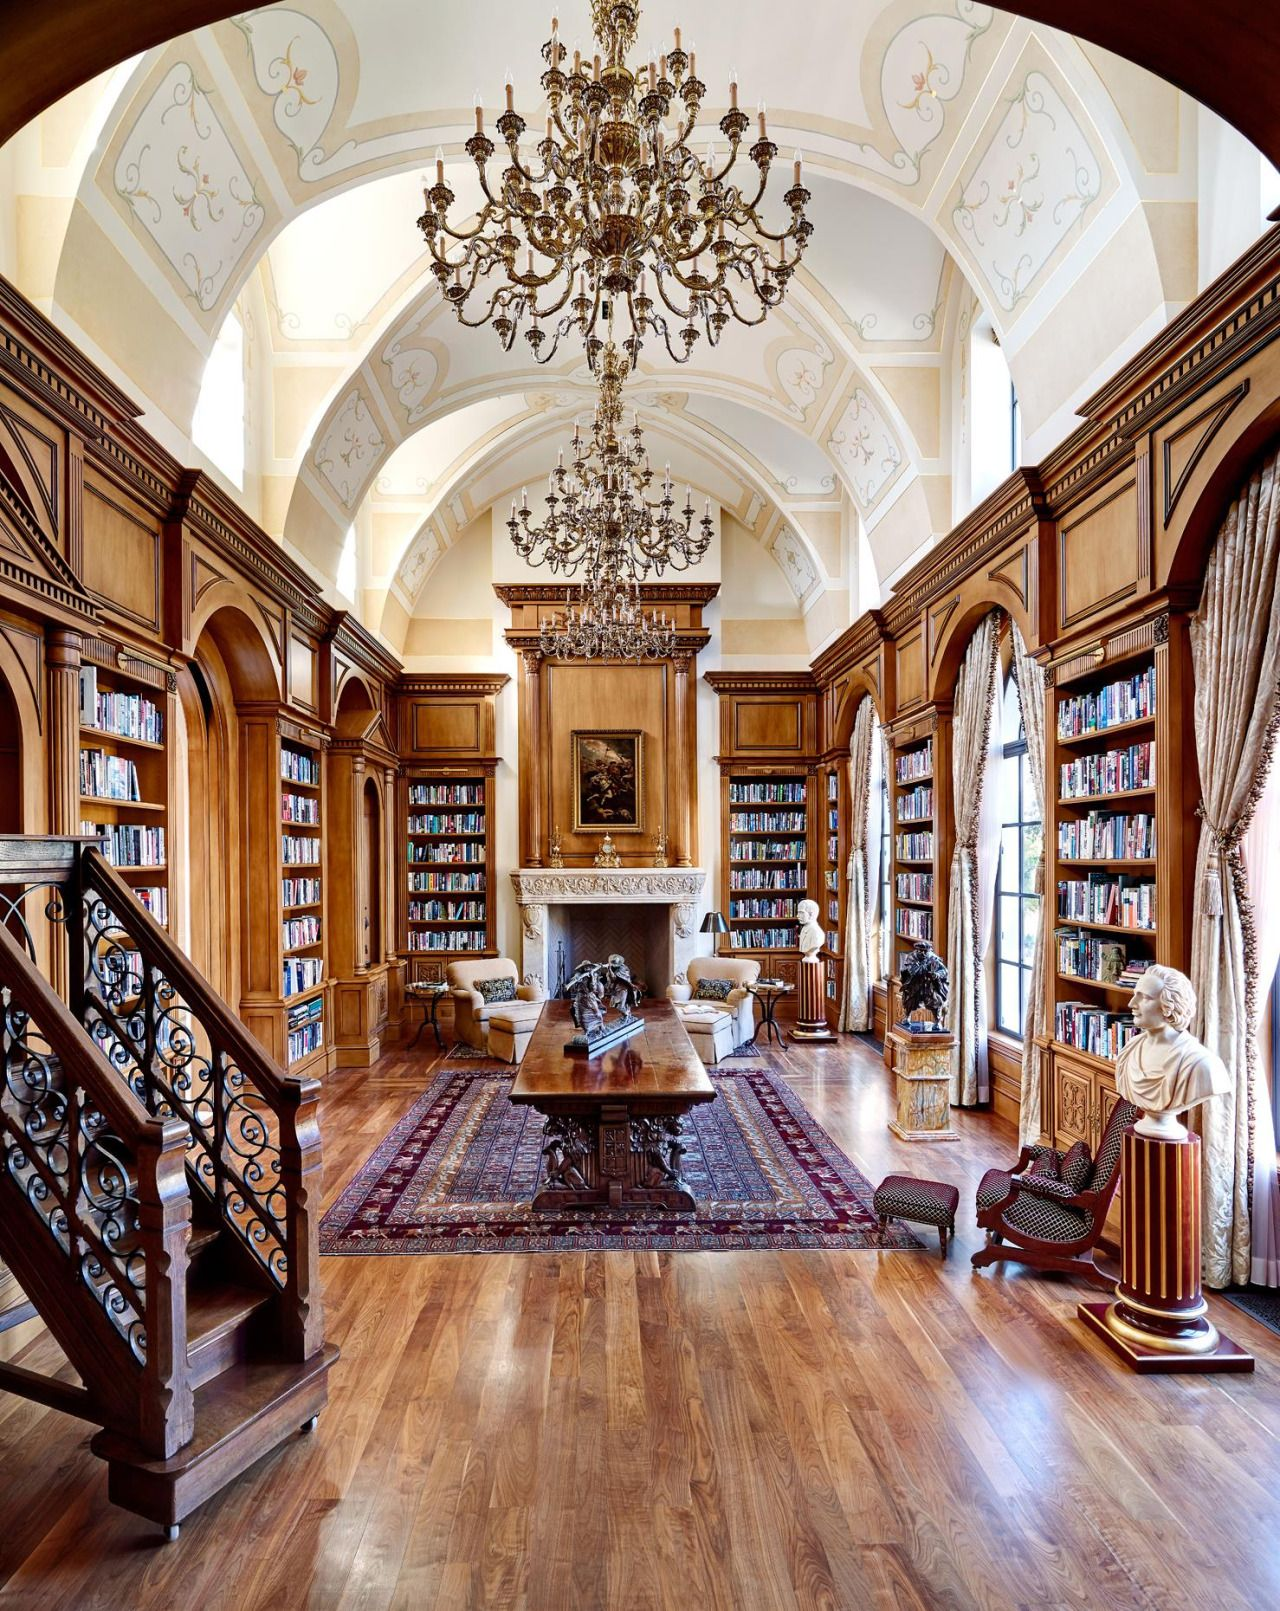 The library of my life room future grand also solo para locos home in pinterest libraries rh